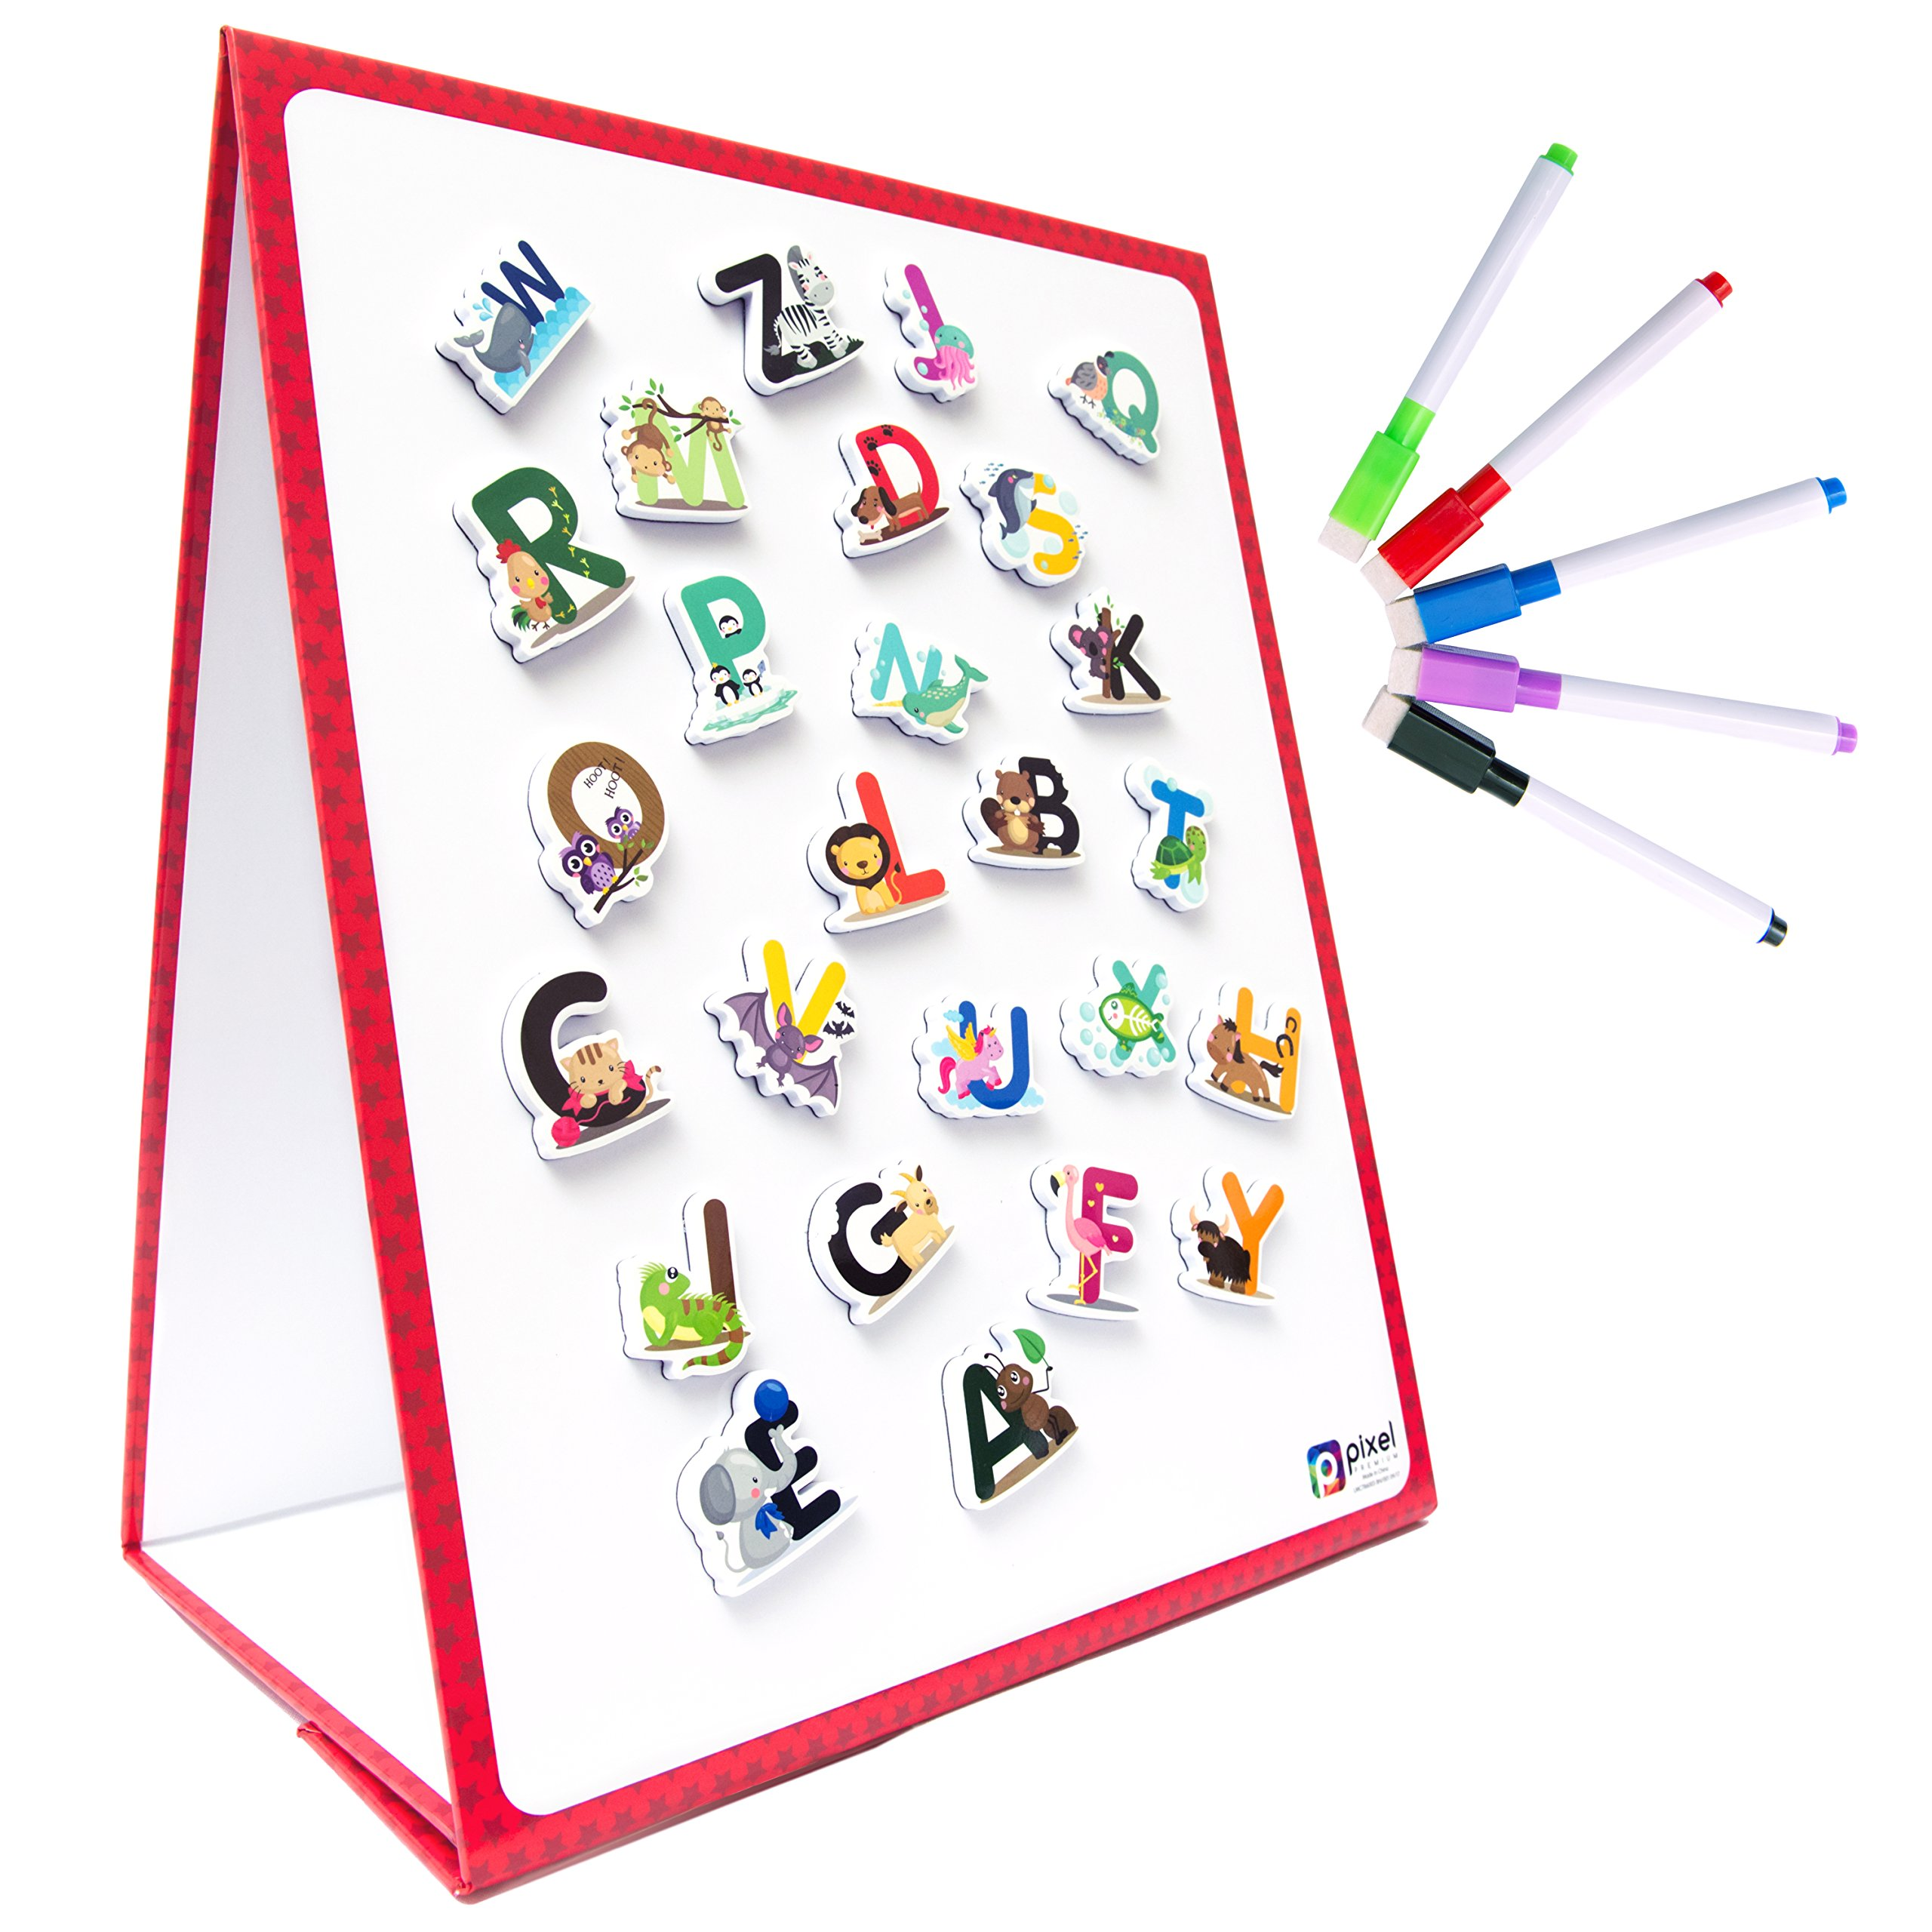 Pixel Premium Magnetic Board Kids 26 ABC Animal Fridge Magnets - Dry Erase Tabletop Foldable Whiteboard Easel - Best Educational Gift Use w/ Magnets, Letters & Dry Erase Markers